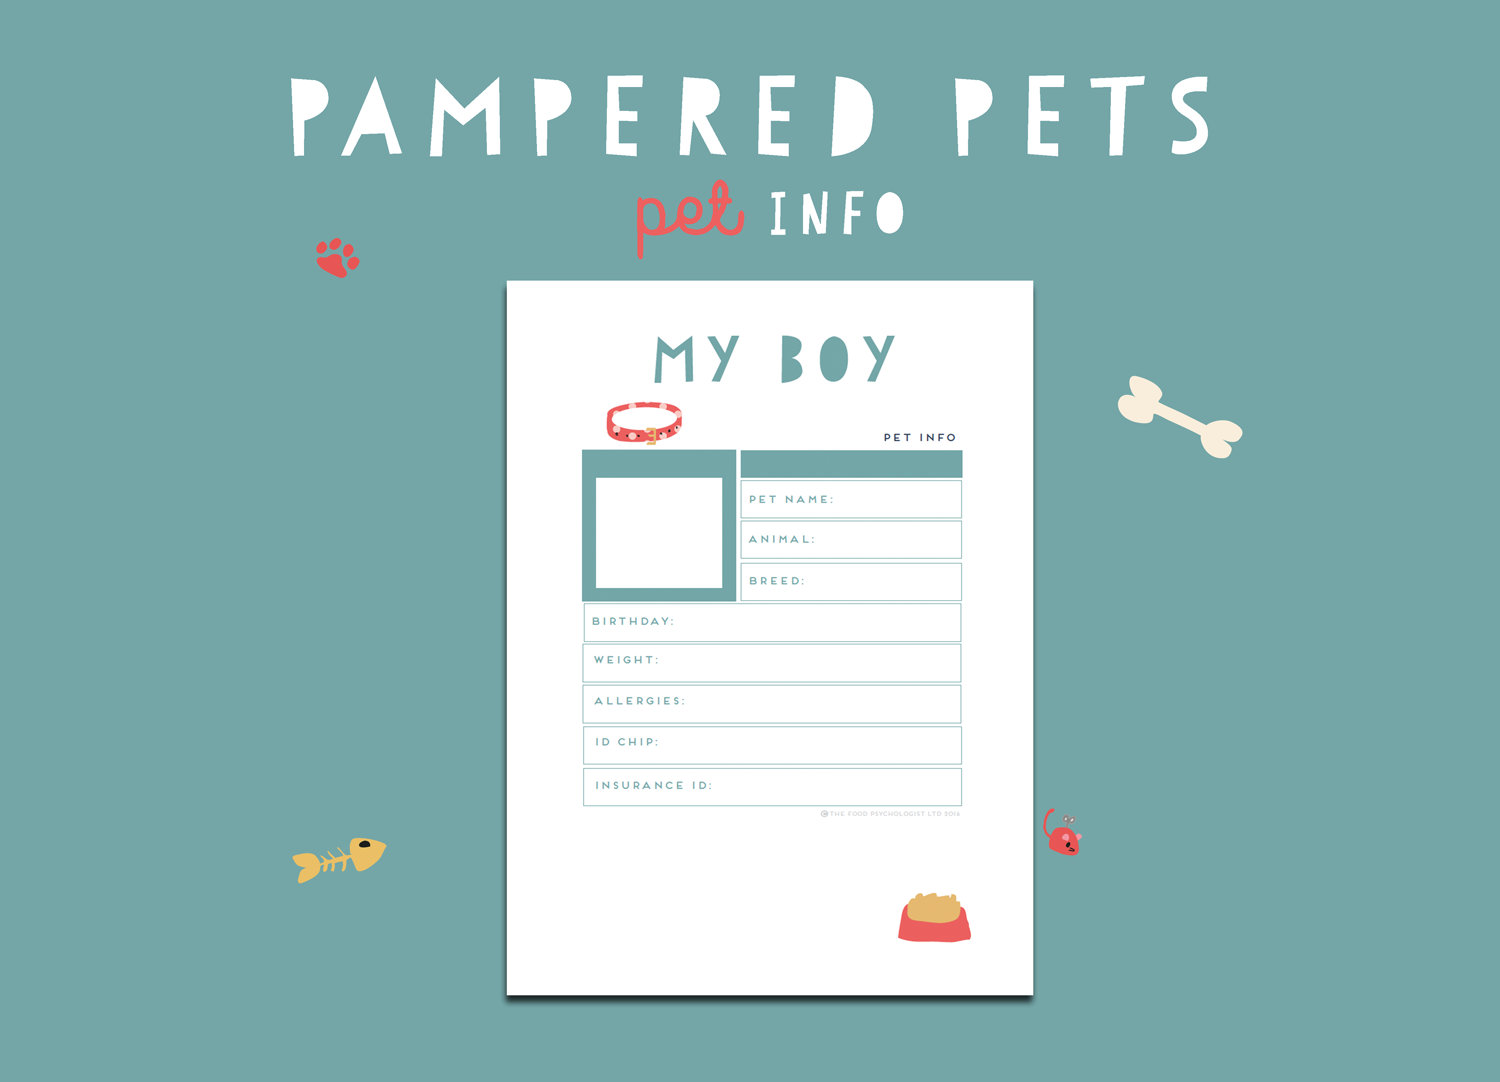 Pampered Pets Pet Info (Boy)